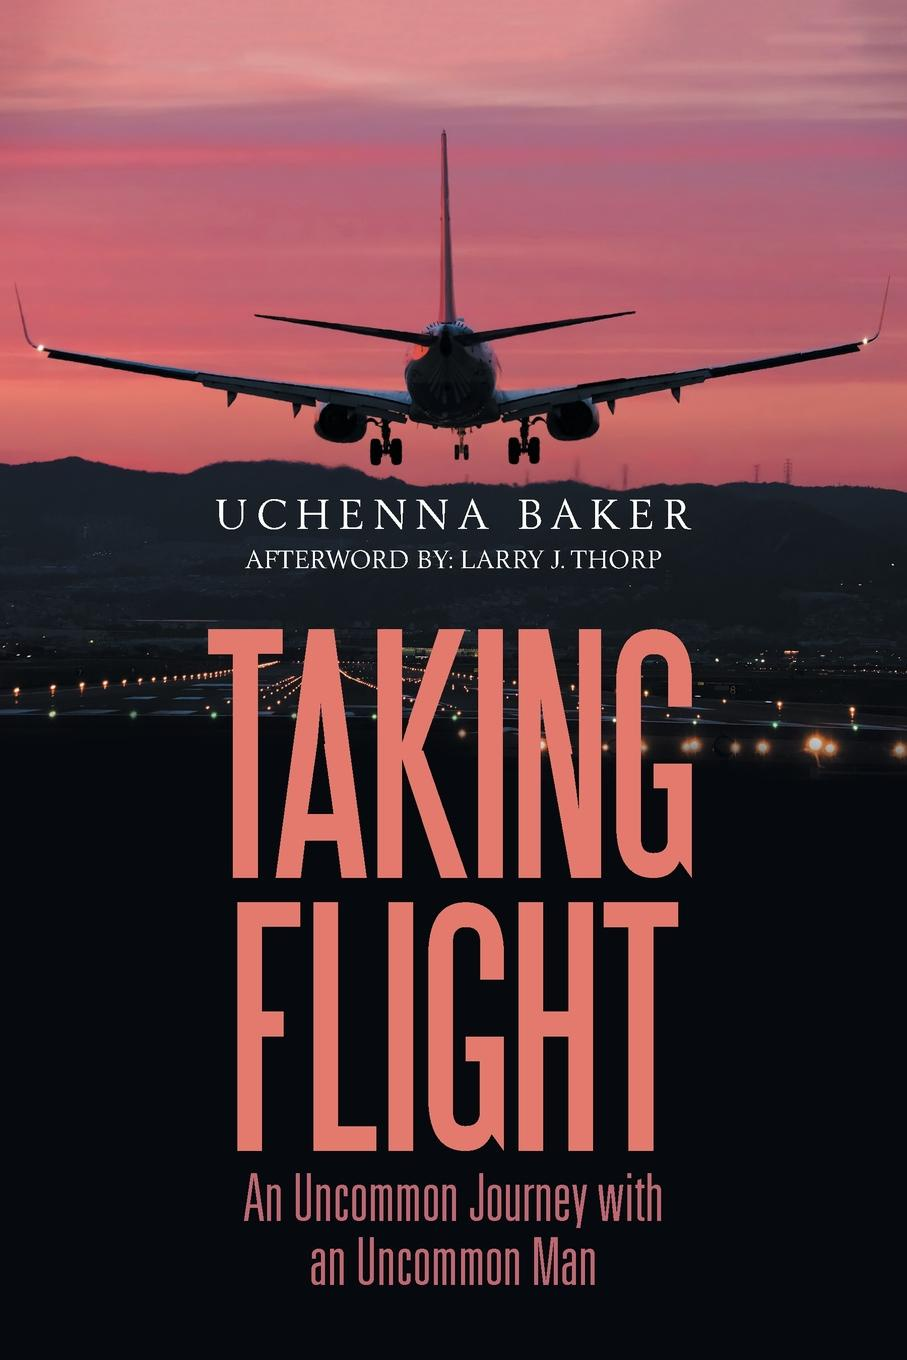 Uchenna Baker Taking Flight. An Uncommon Journey with an Uncommon Man